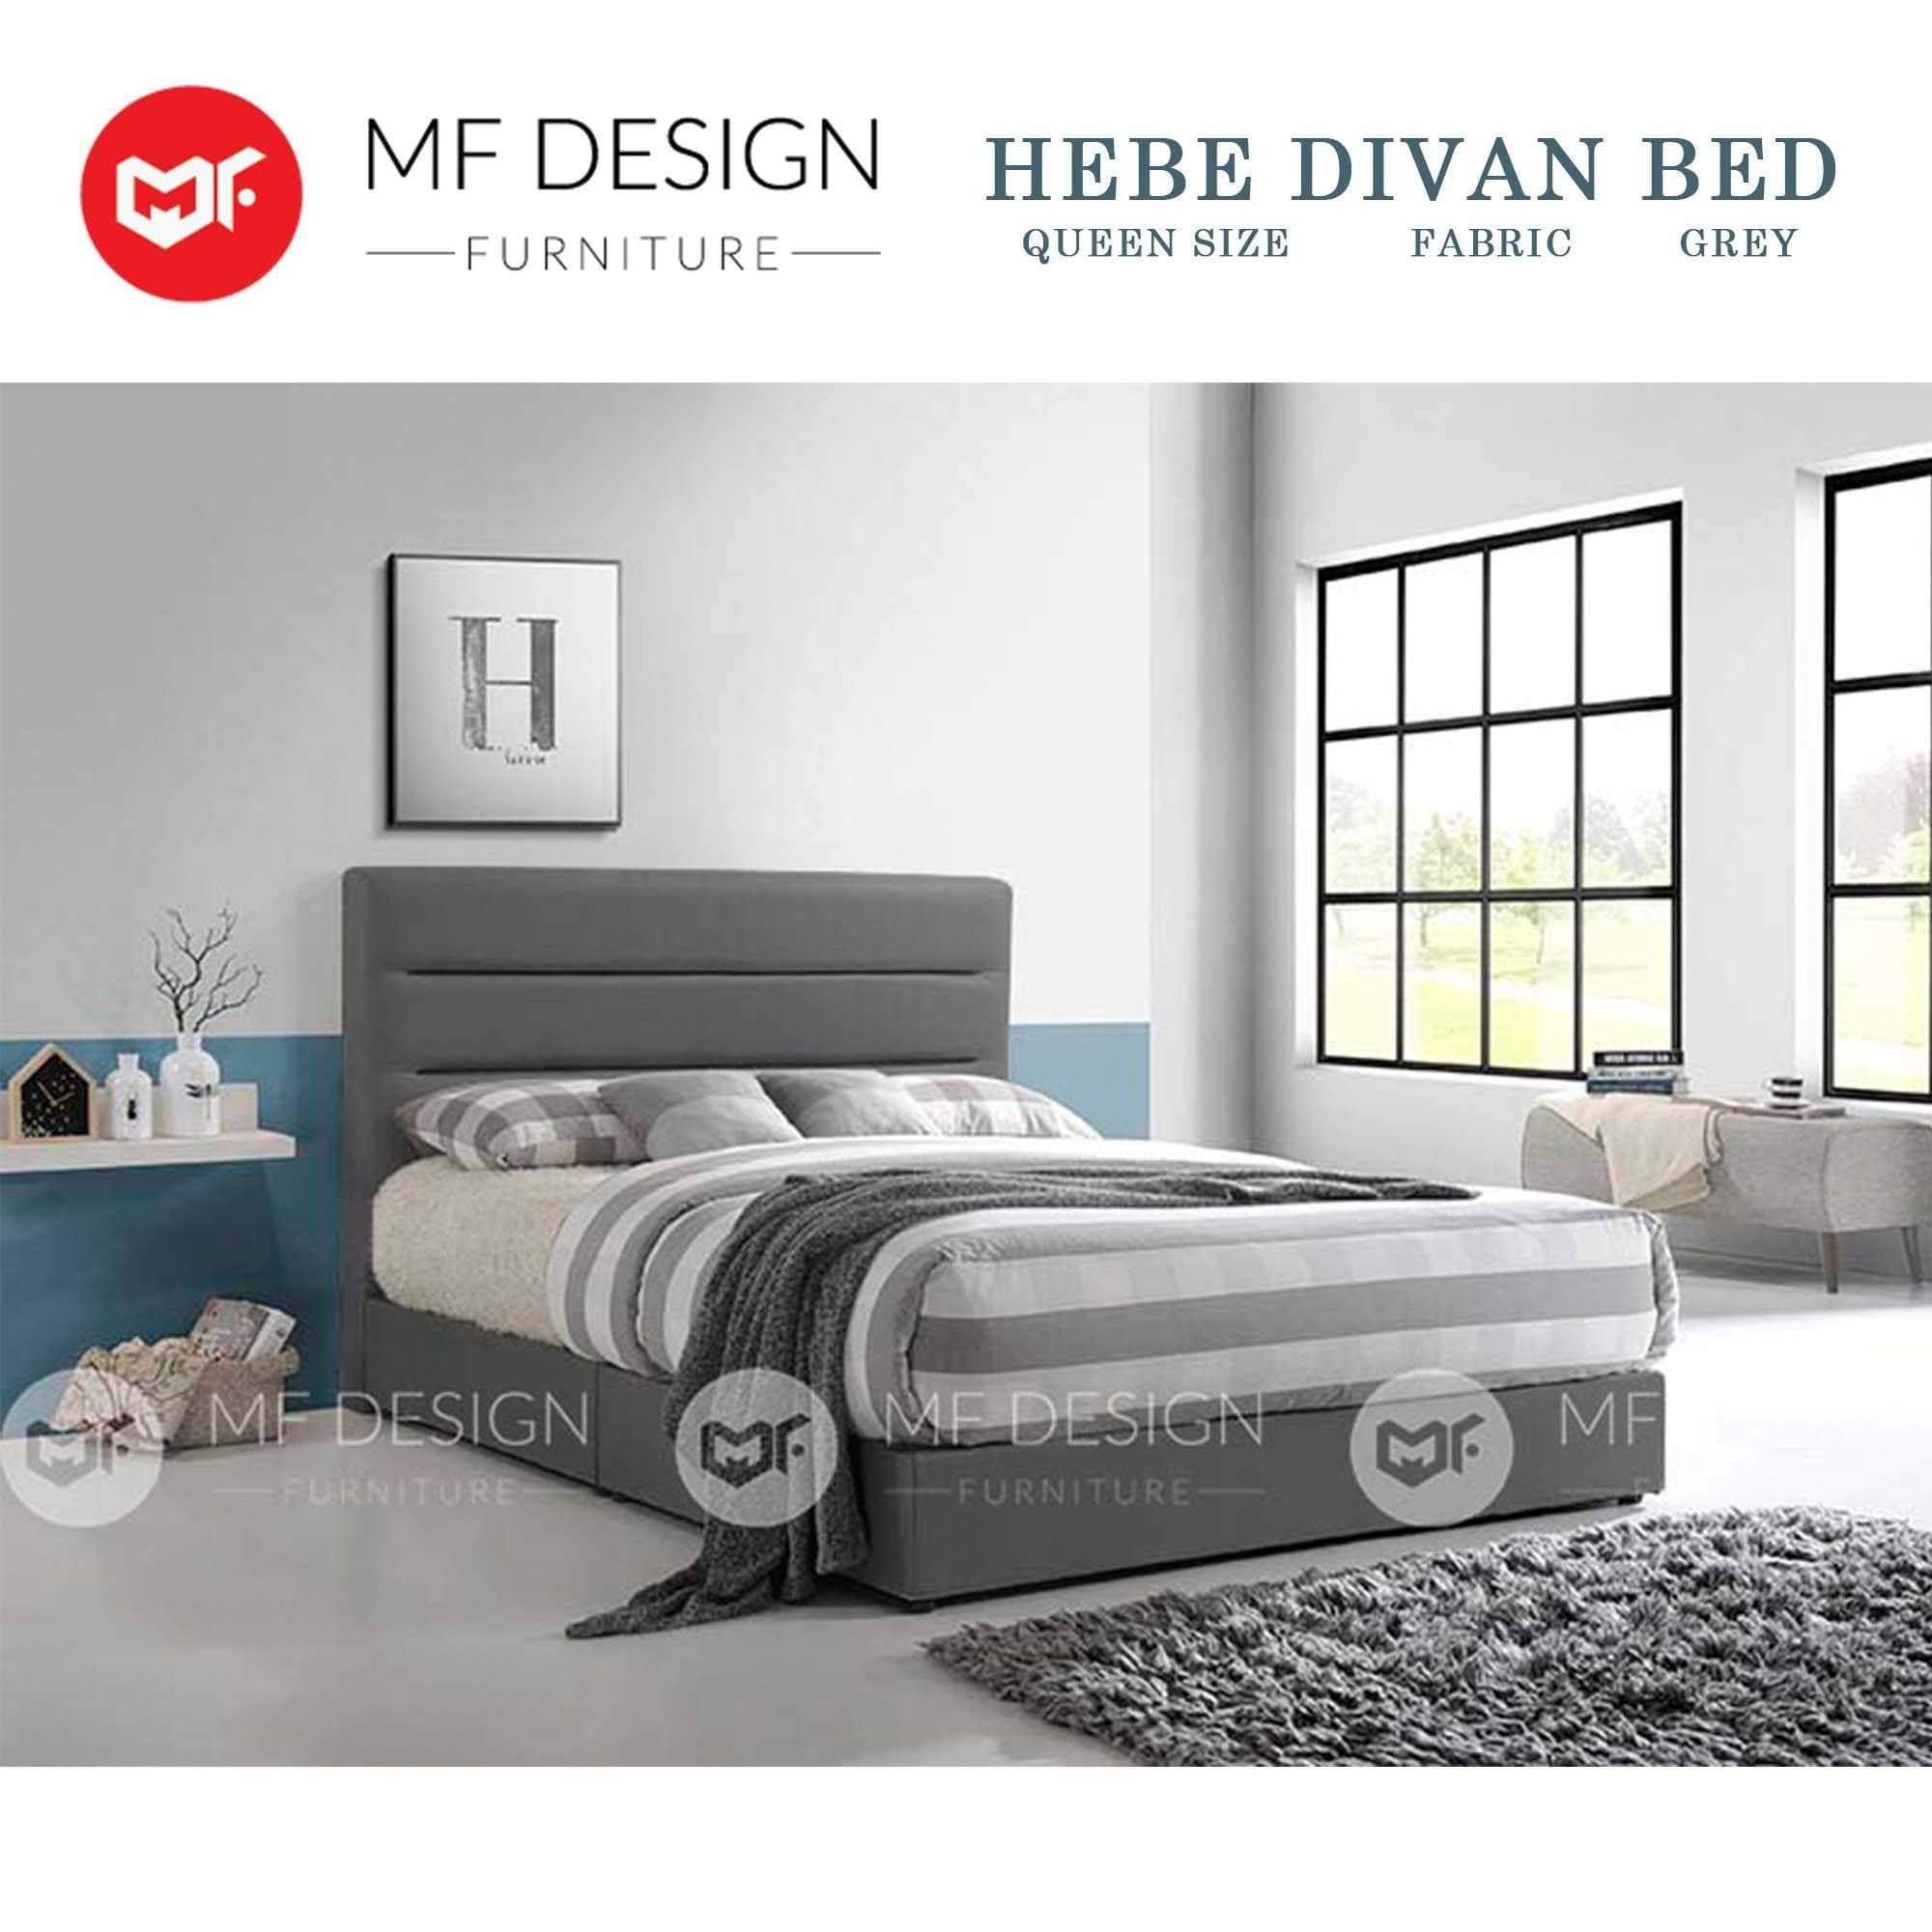 mfdesign88 HEBE DIVAN BED(FABRIC)